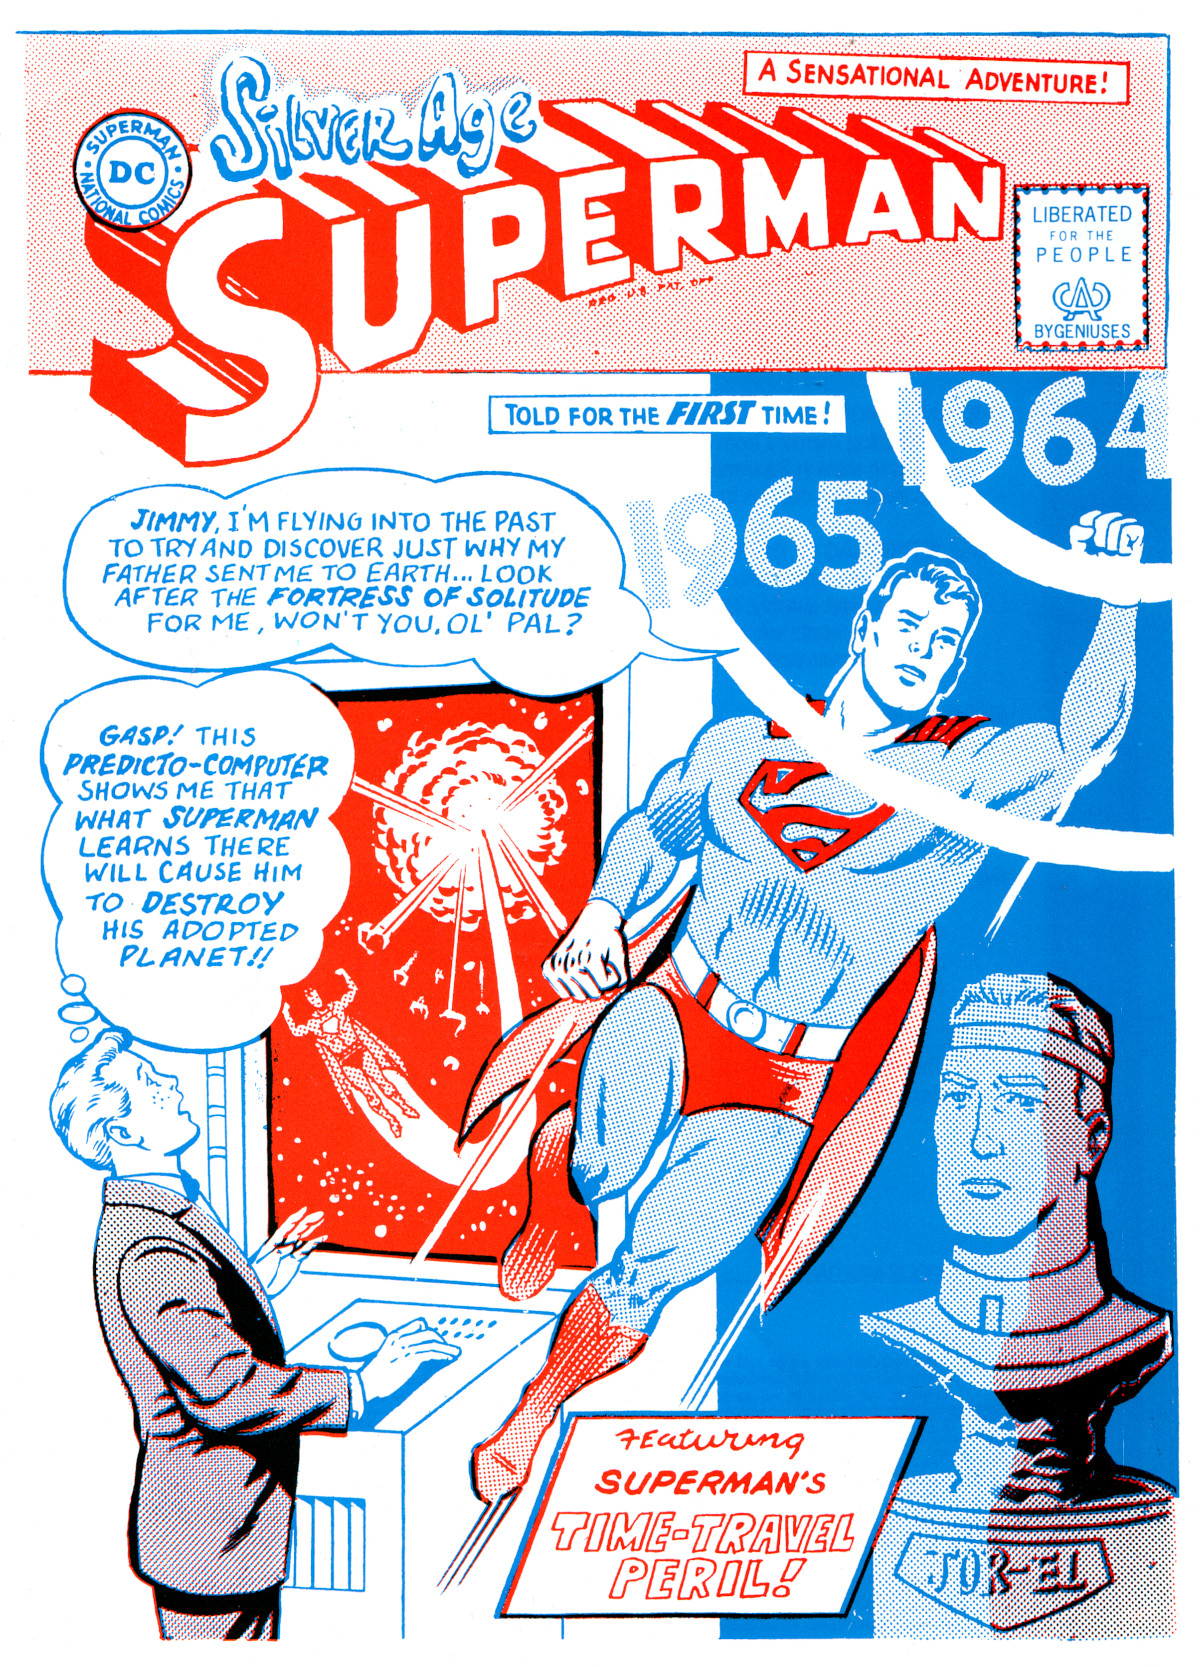 Silver-Age Superman: back in print